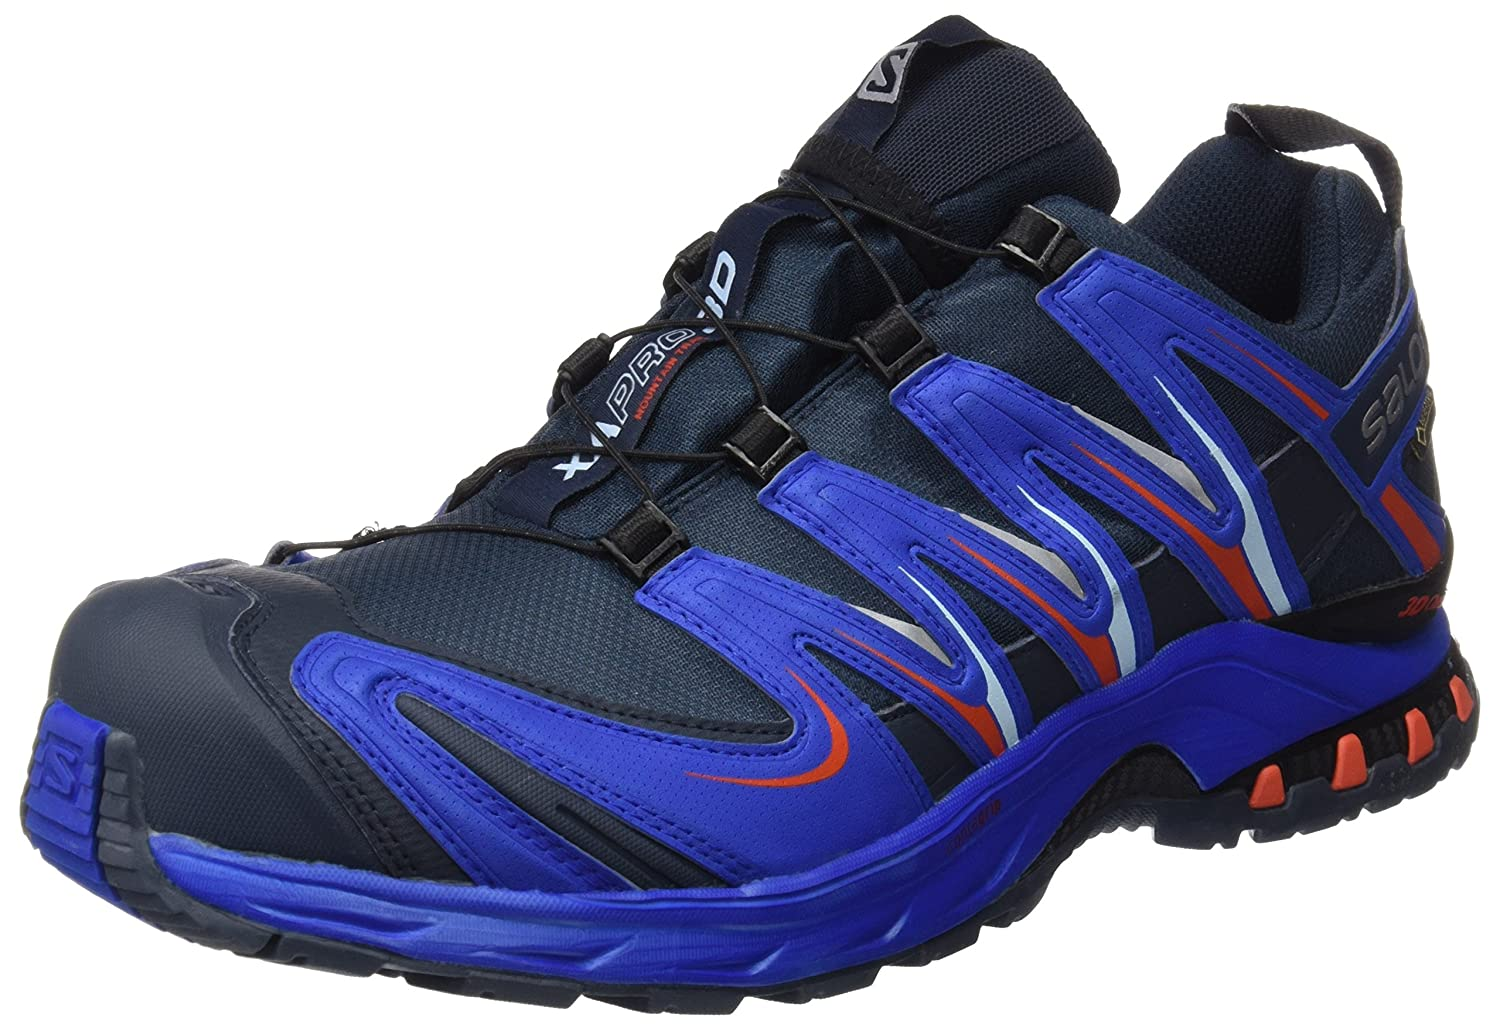 Salomon L39072000, Zapatillas de Trail Running para Hombre 42 EU|Azul (Deep Blue / Blue Yonder / Lava Orange)